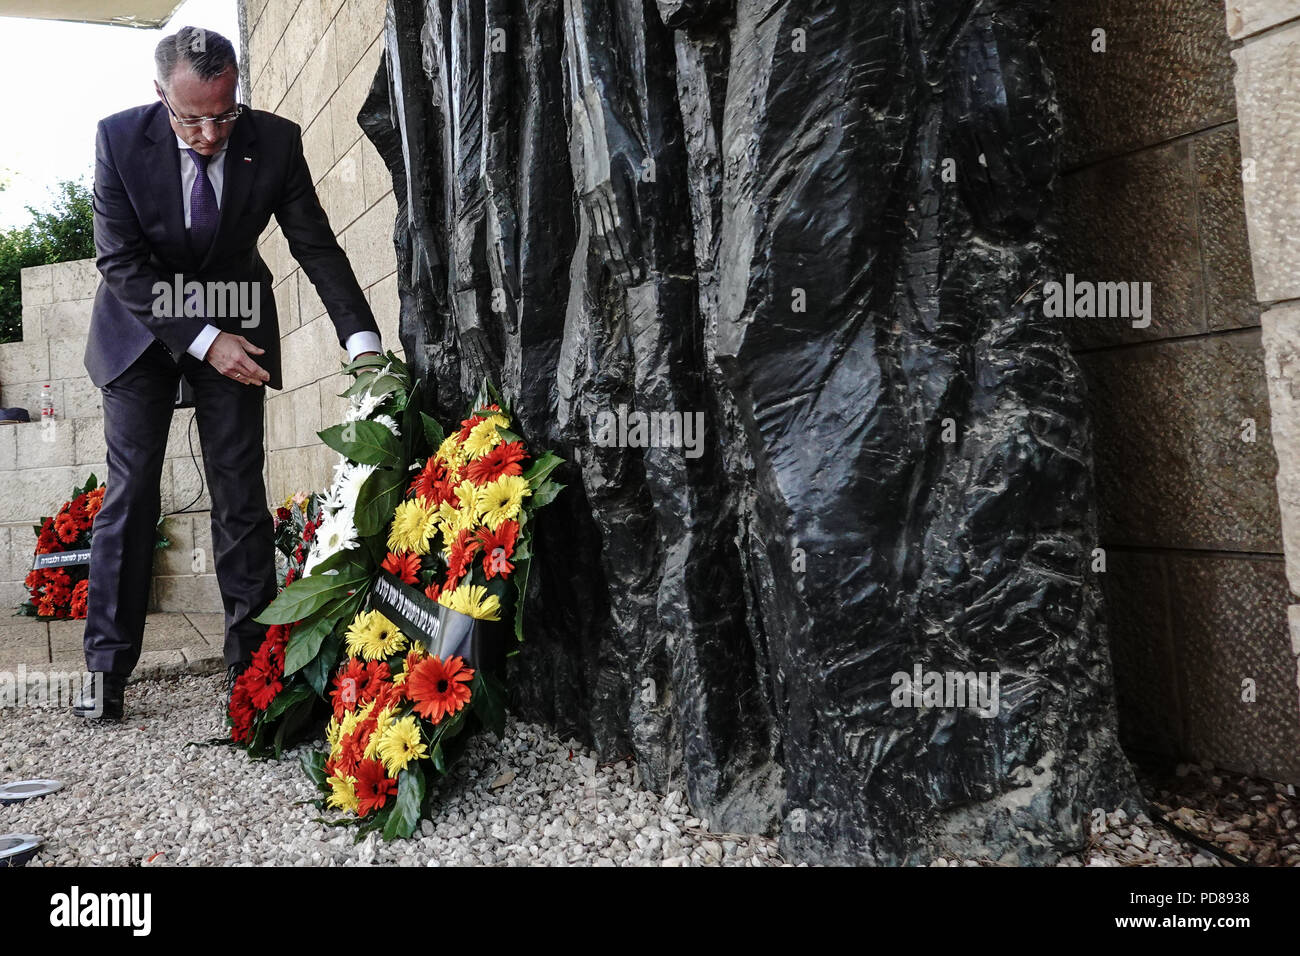 Jerusalem, Israel. 7th August, 2018. Polish Ambassador to Israel, MAREK MAGIEROWSKI, places a flower wreath at the foot of 'Korczak And The Ghetto's Children' by Boris Saktsier in a memorial ceremony marking 76 years since the death of Janusz Korczak. Korczak, born Henryk Goldszmit in 1878, a Polish Jewish educator and pediatrician, director of an orphanage in Warsaw, refused personal freedom and escorted his 200 orphans, forced to the Treblinka death camp, where they were all exterminated in 1942. Credit: Nir Alon/Alamy Live News Stock Photo